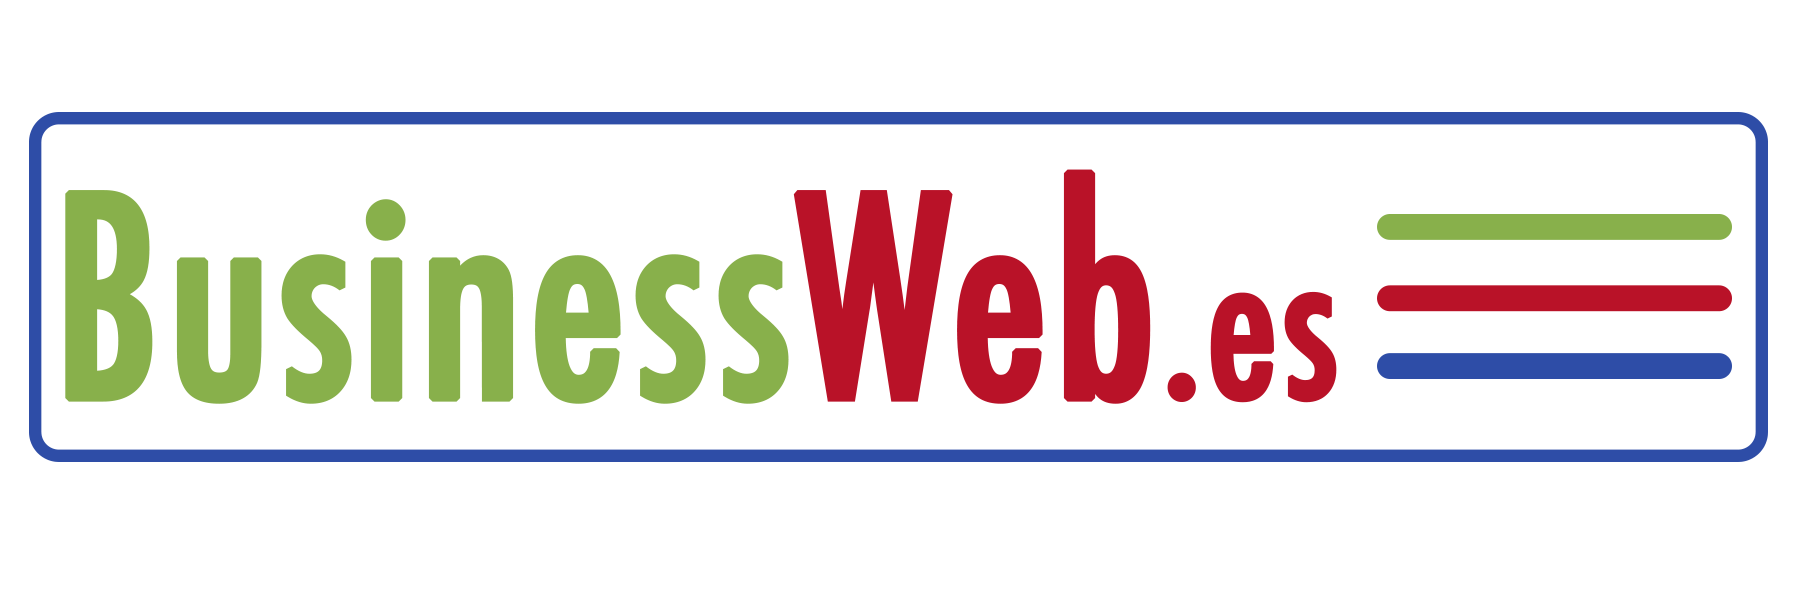 BusinessWeb